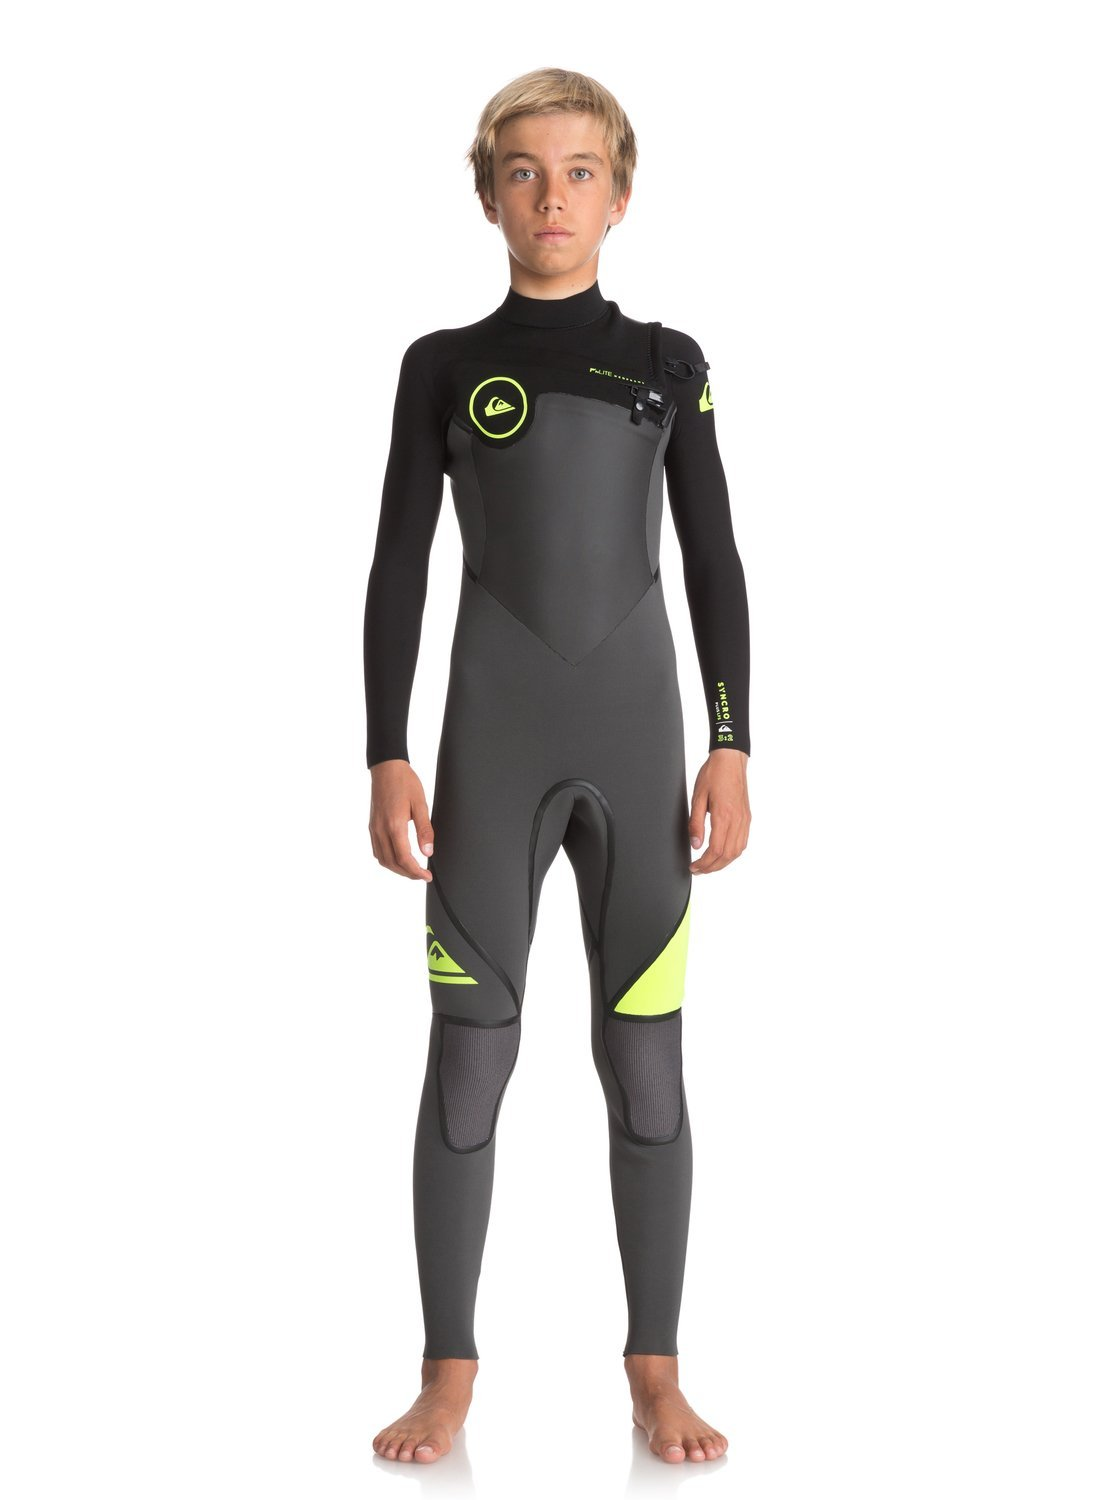 Quiksilver Boys 3/2Mm Syncro Plus Chest Zip - Full Wetsuit Chest Zip Wetsuit Black 8 by Quiksilver